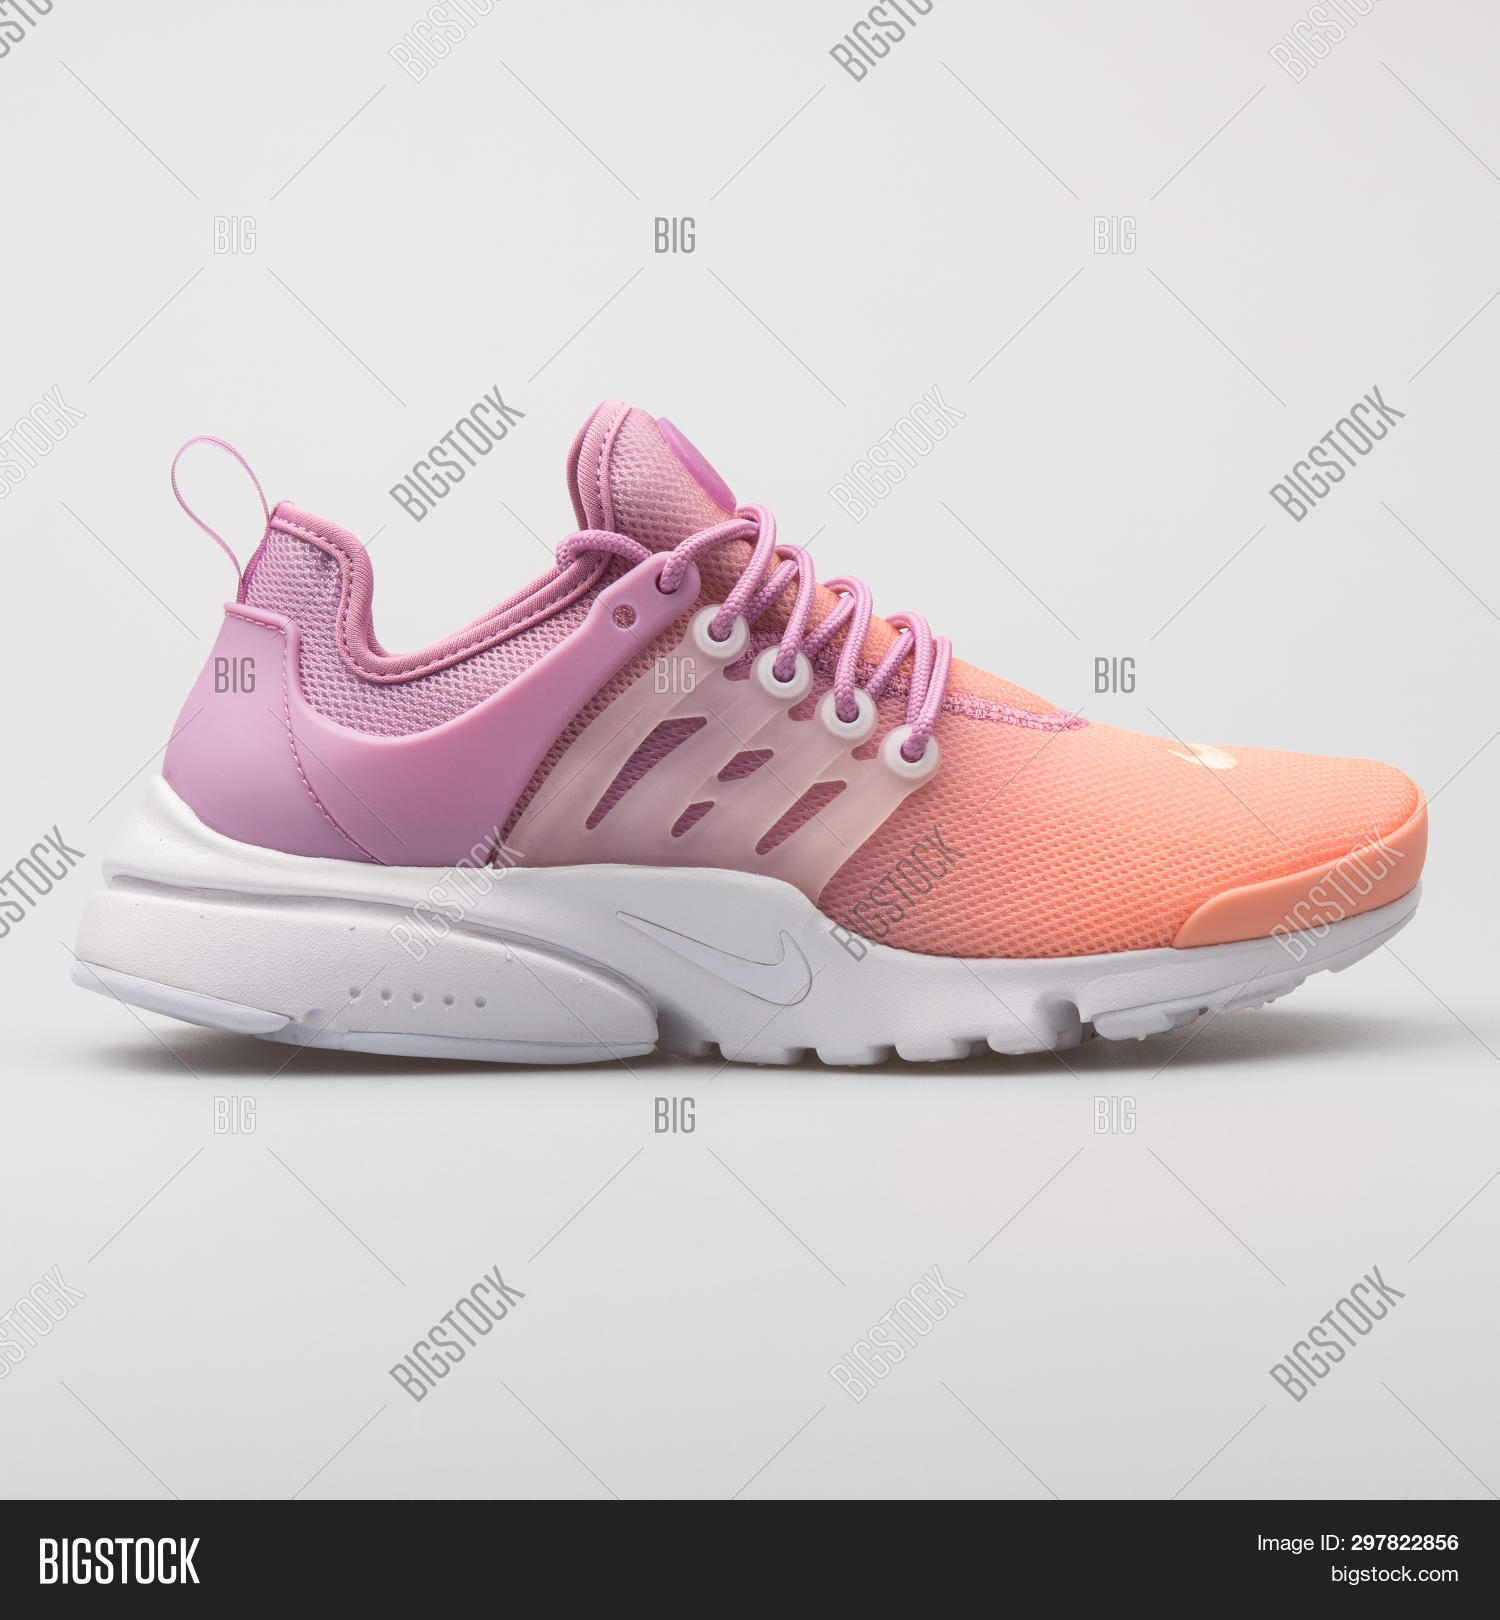 nike air presto ultra 2017